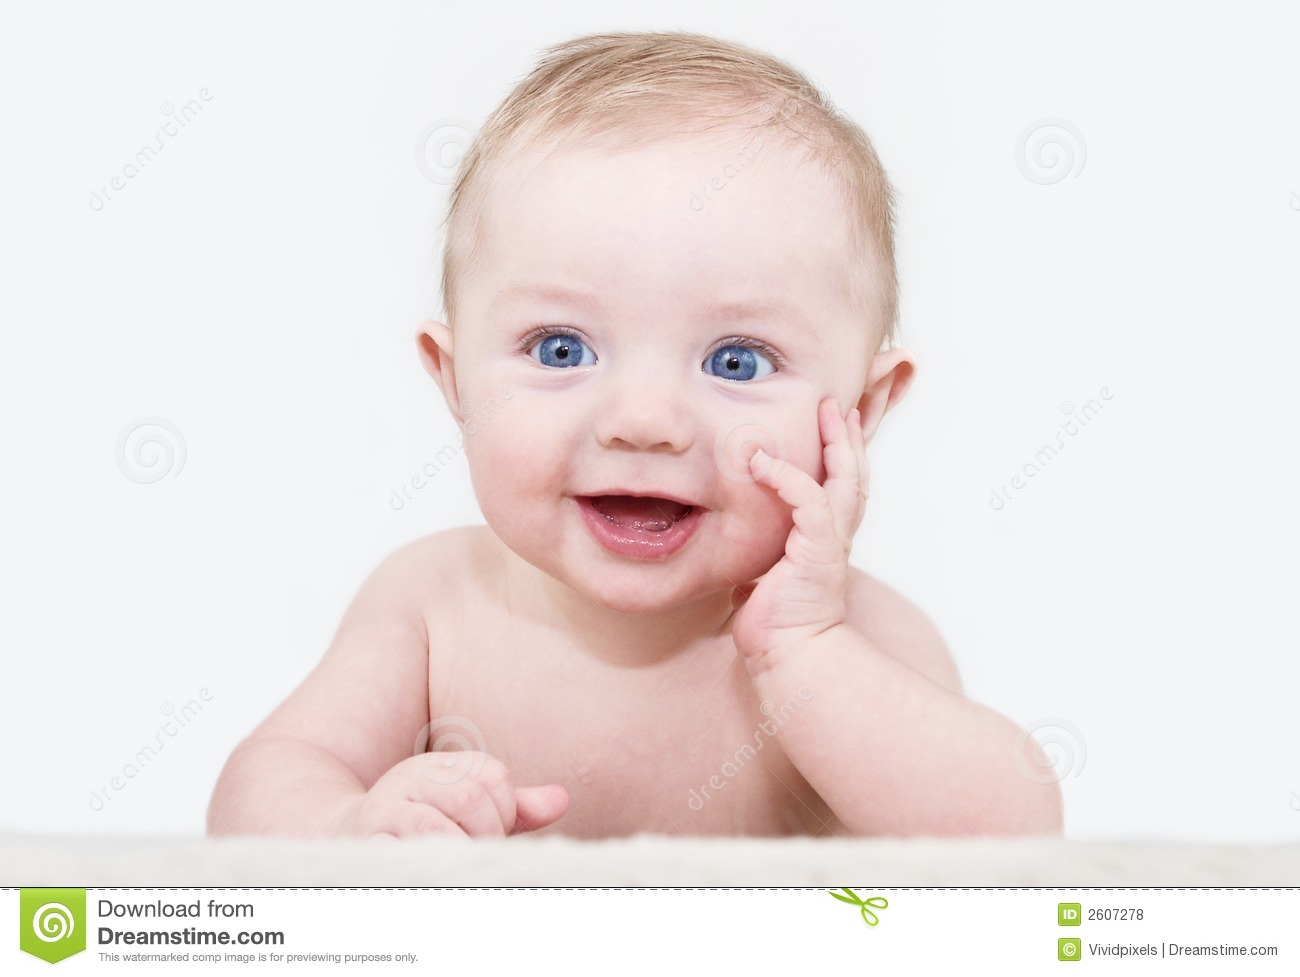 boy stock photos - royalty free stock images